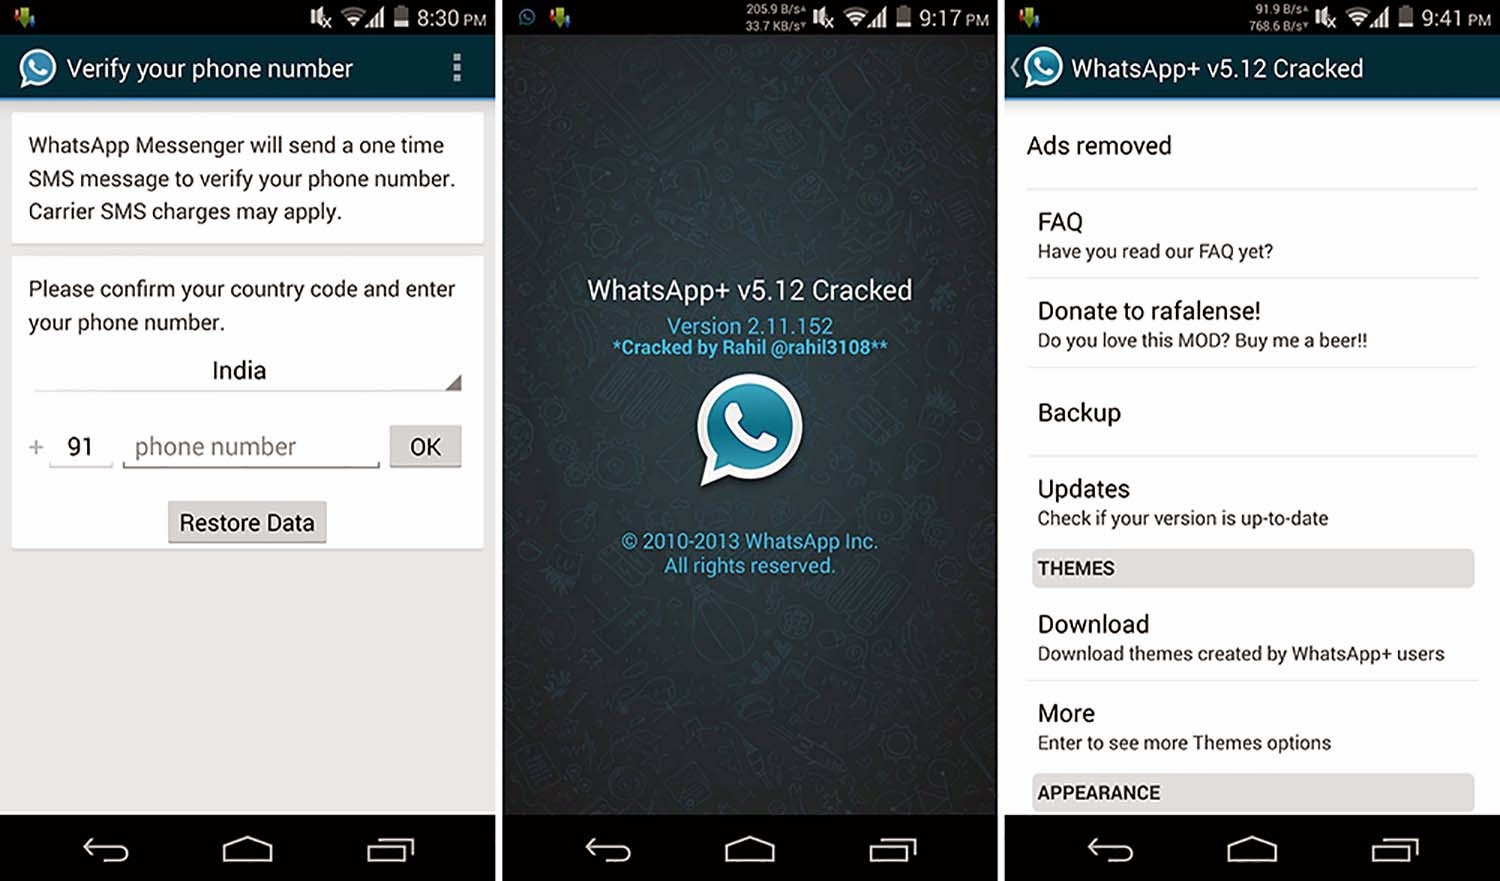 Whatsapp+ Plus Apk Mod - APK-DL